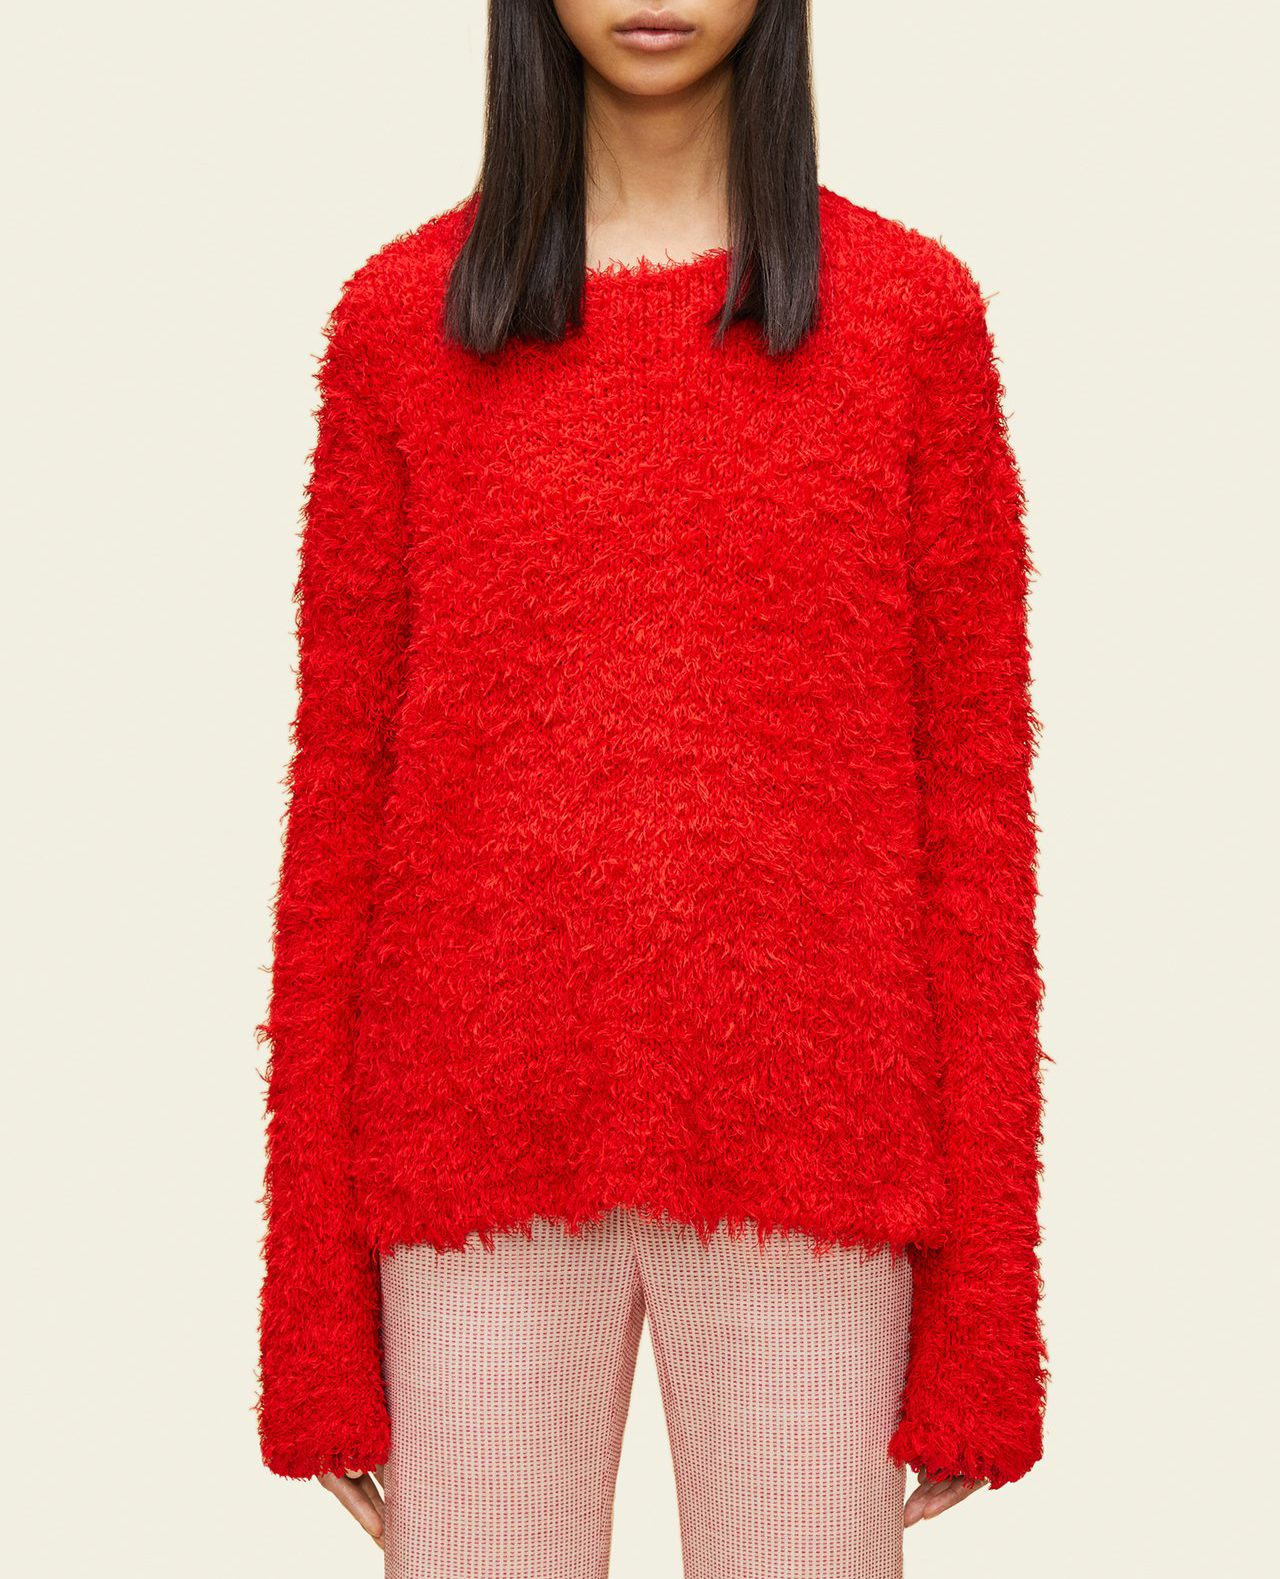 mansur gavriel sweater